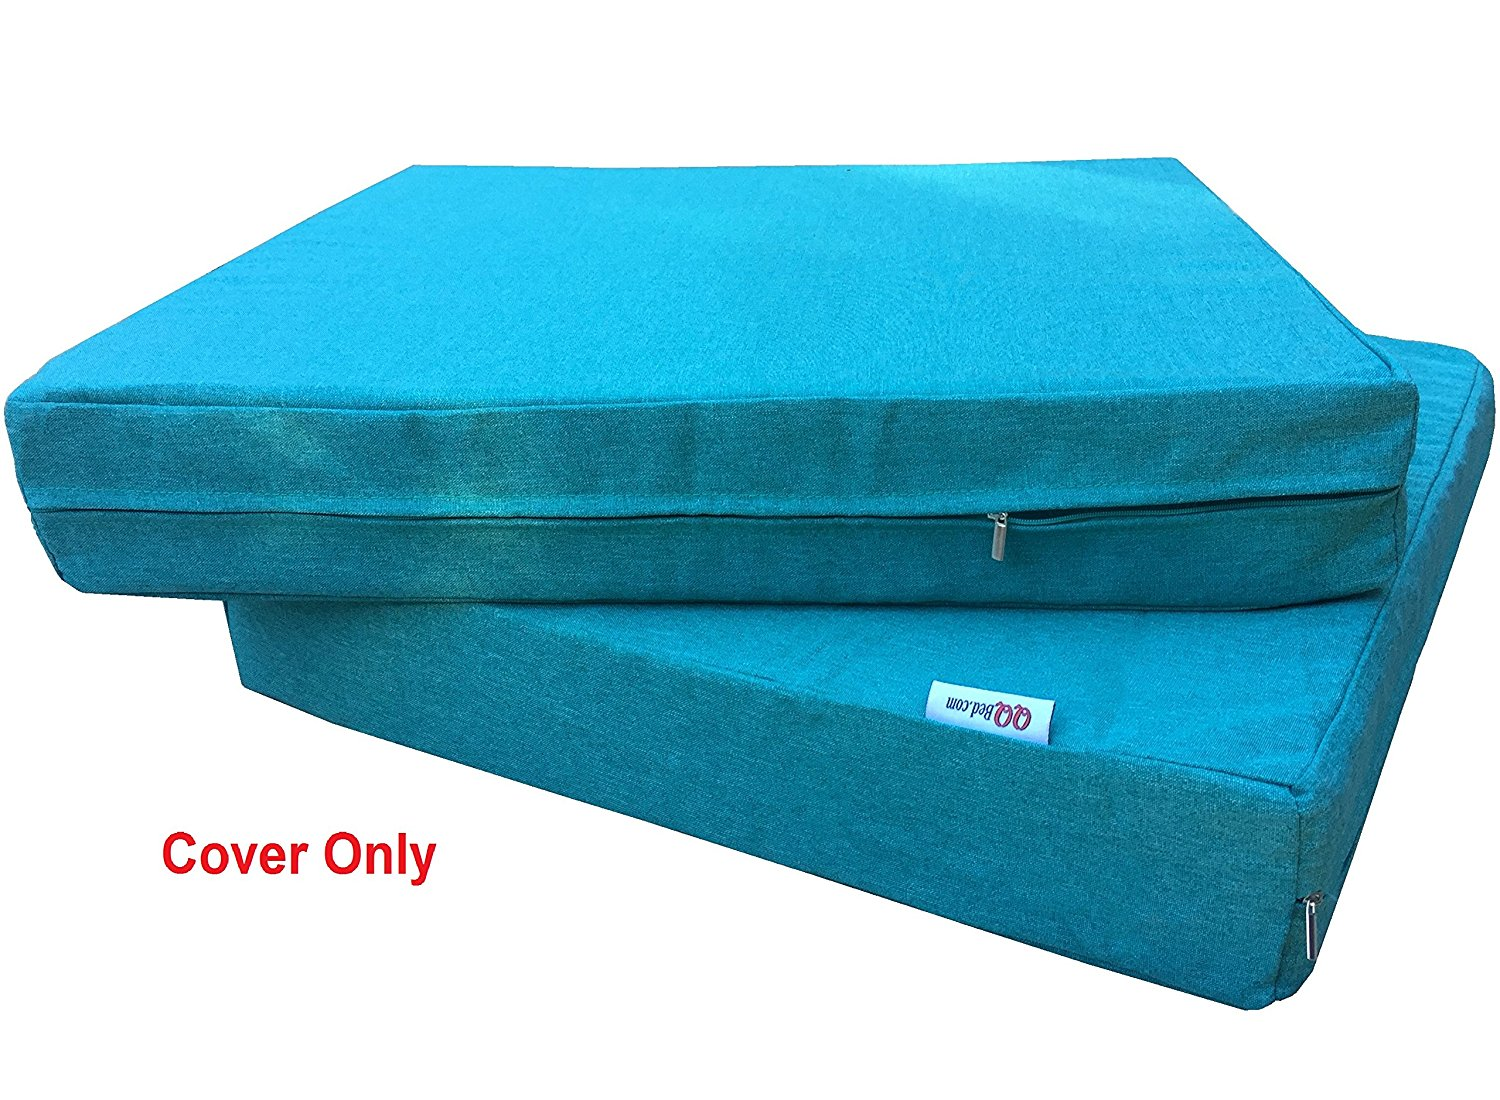 Cushion Covers Teal Blue Pillows Cover